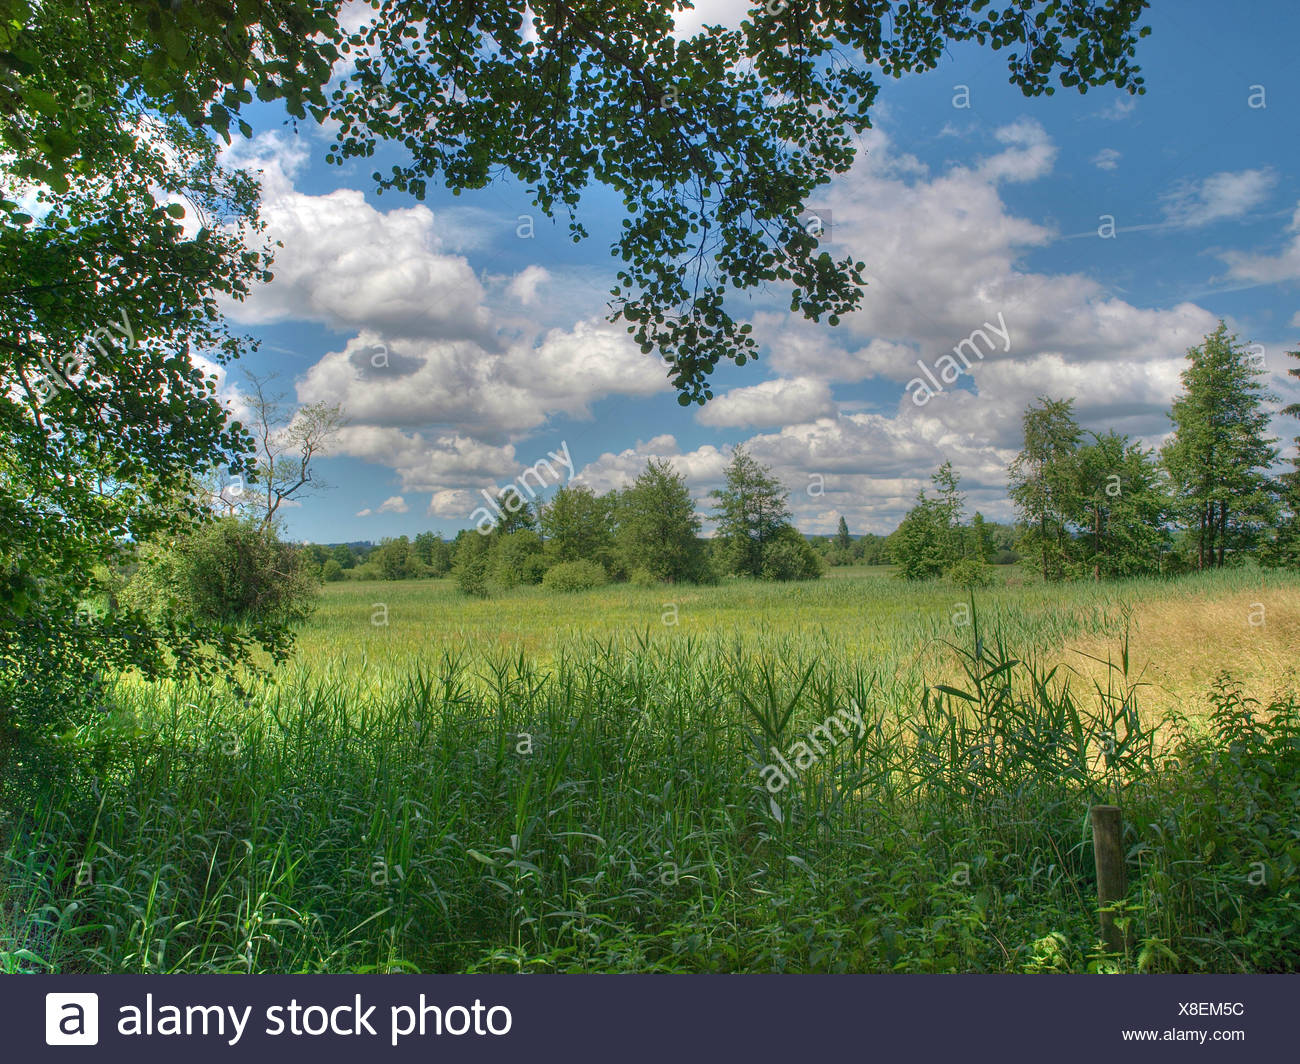 Trees, grab lake, green, nature reserve, reed, protection of birds, clouds, Switzerland, - Stock Image